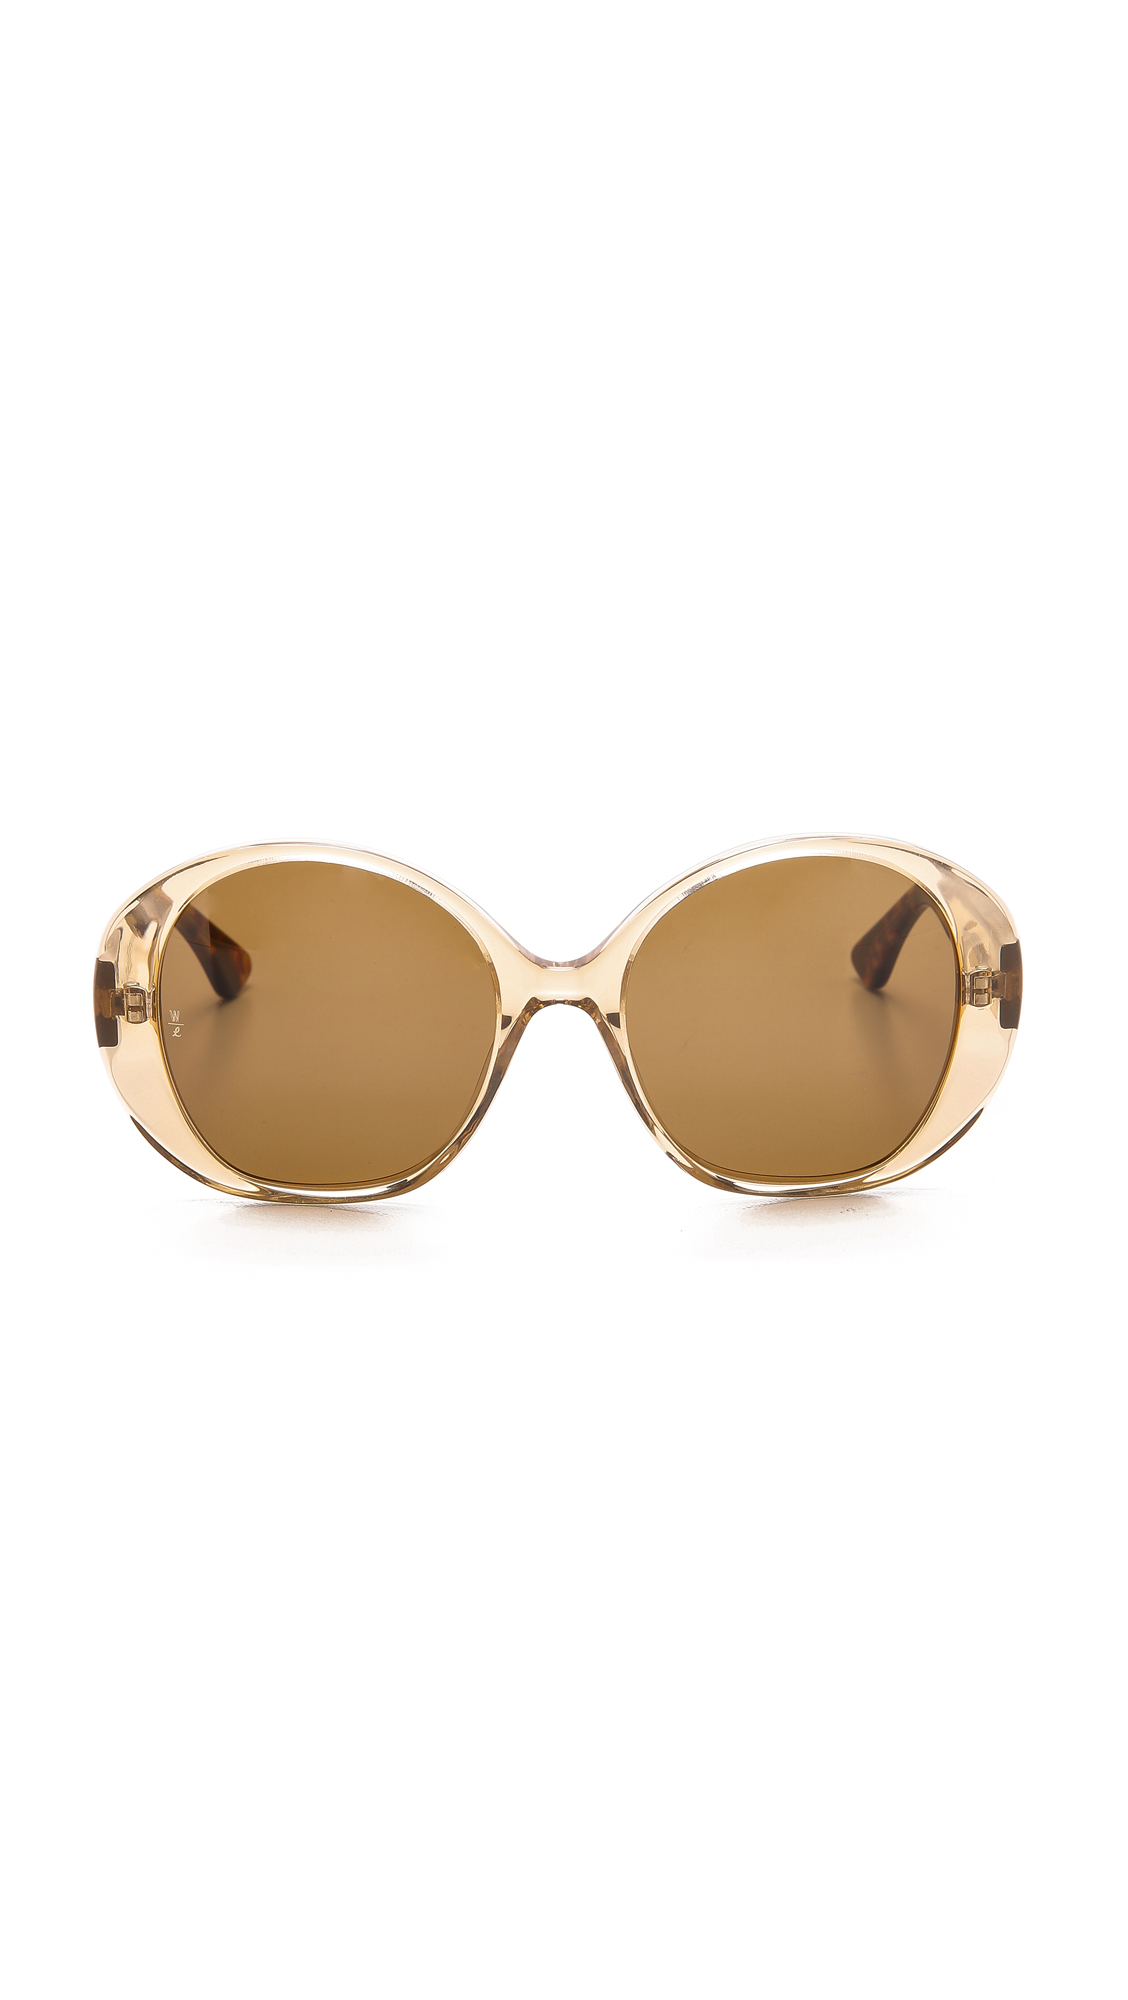 b59f0dd843 Lyst - Wonderland Sun City Sunglasses - Clear Beach Glass bronze in ...